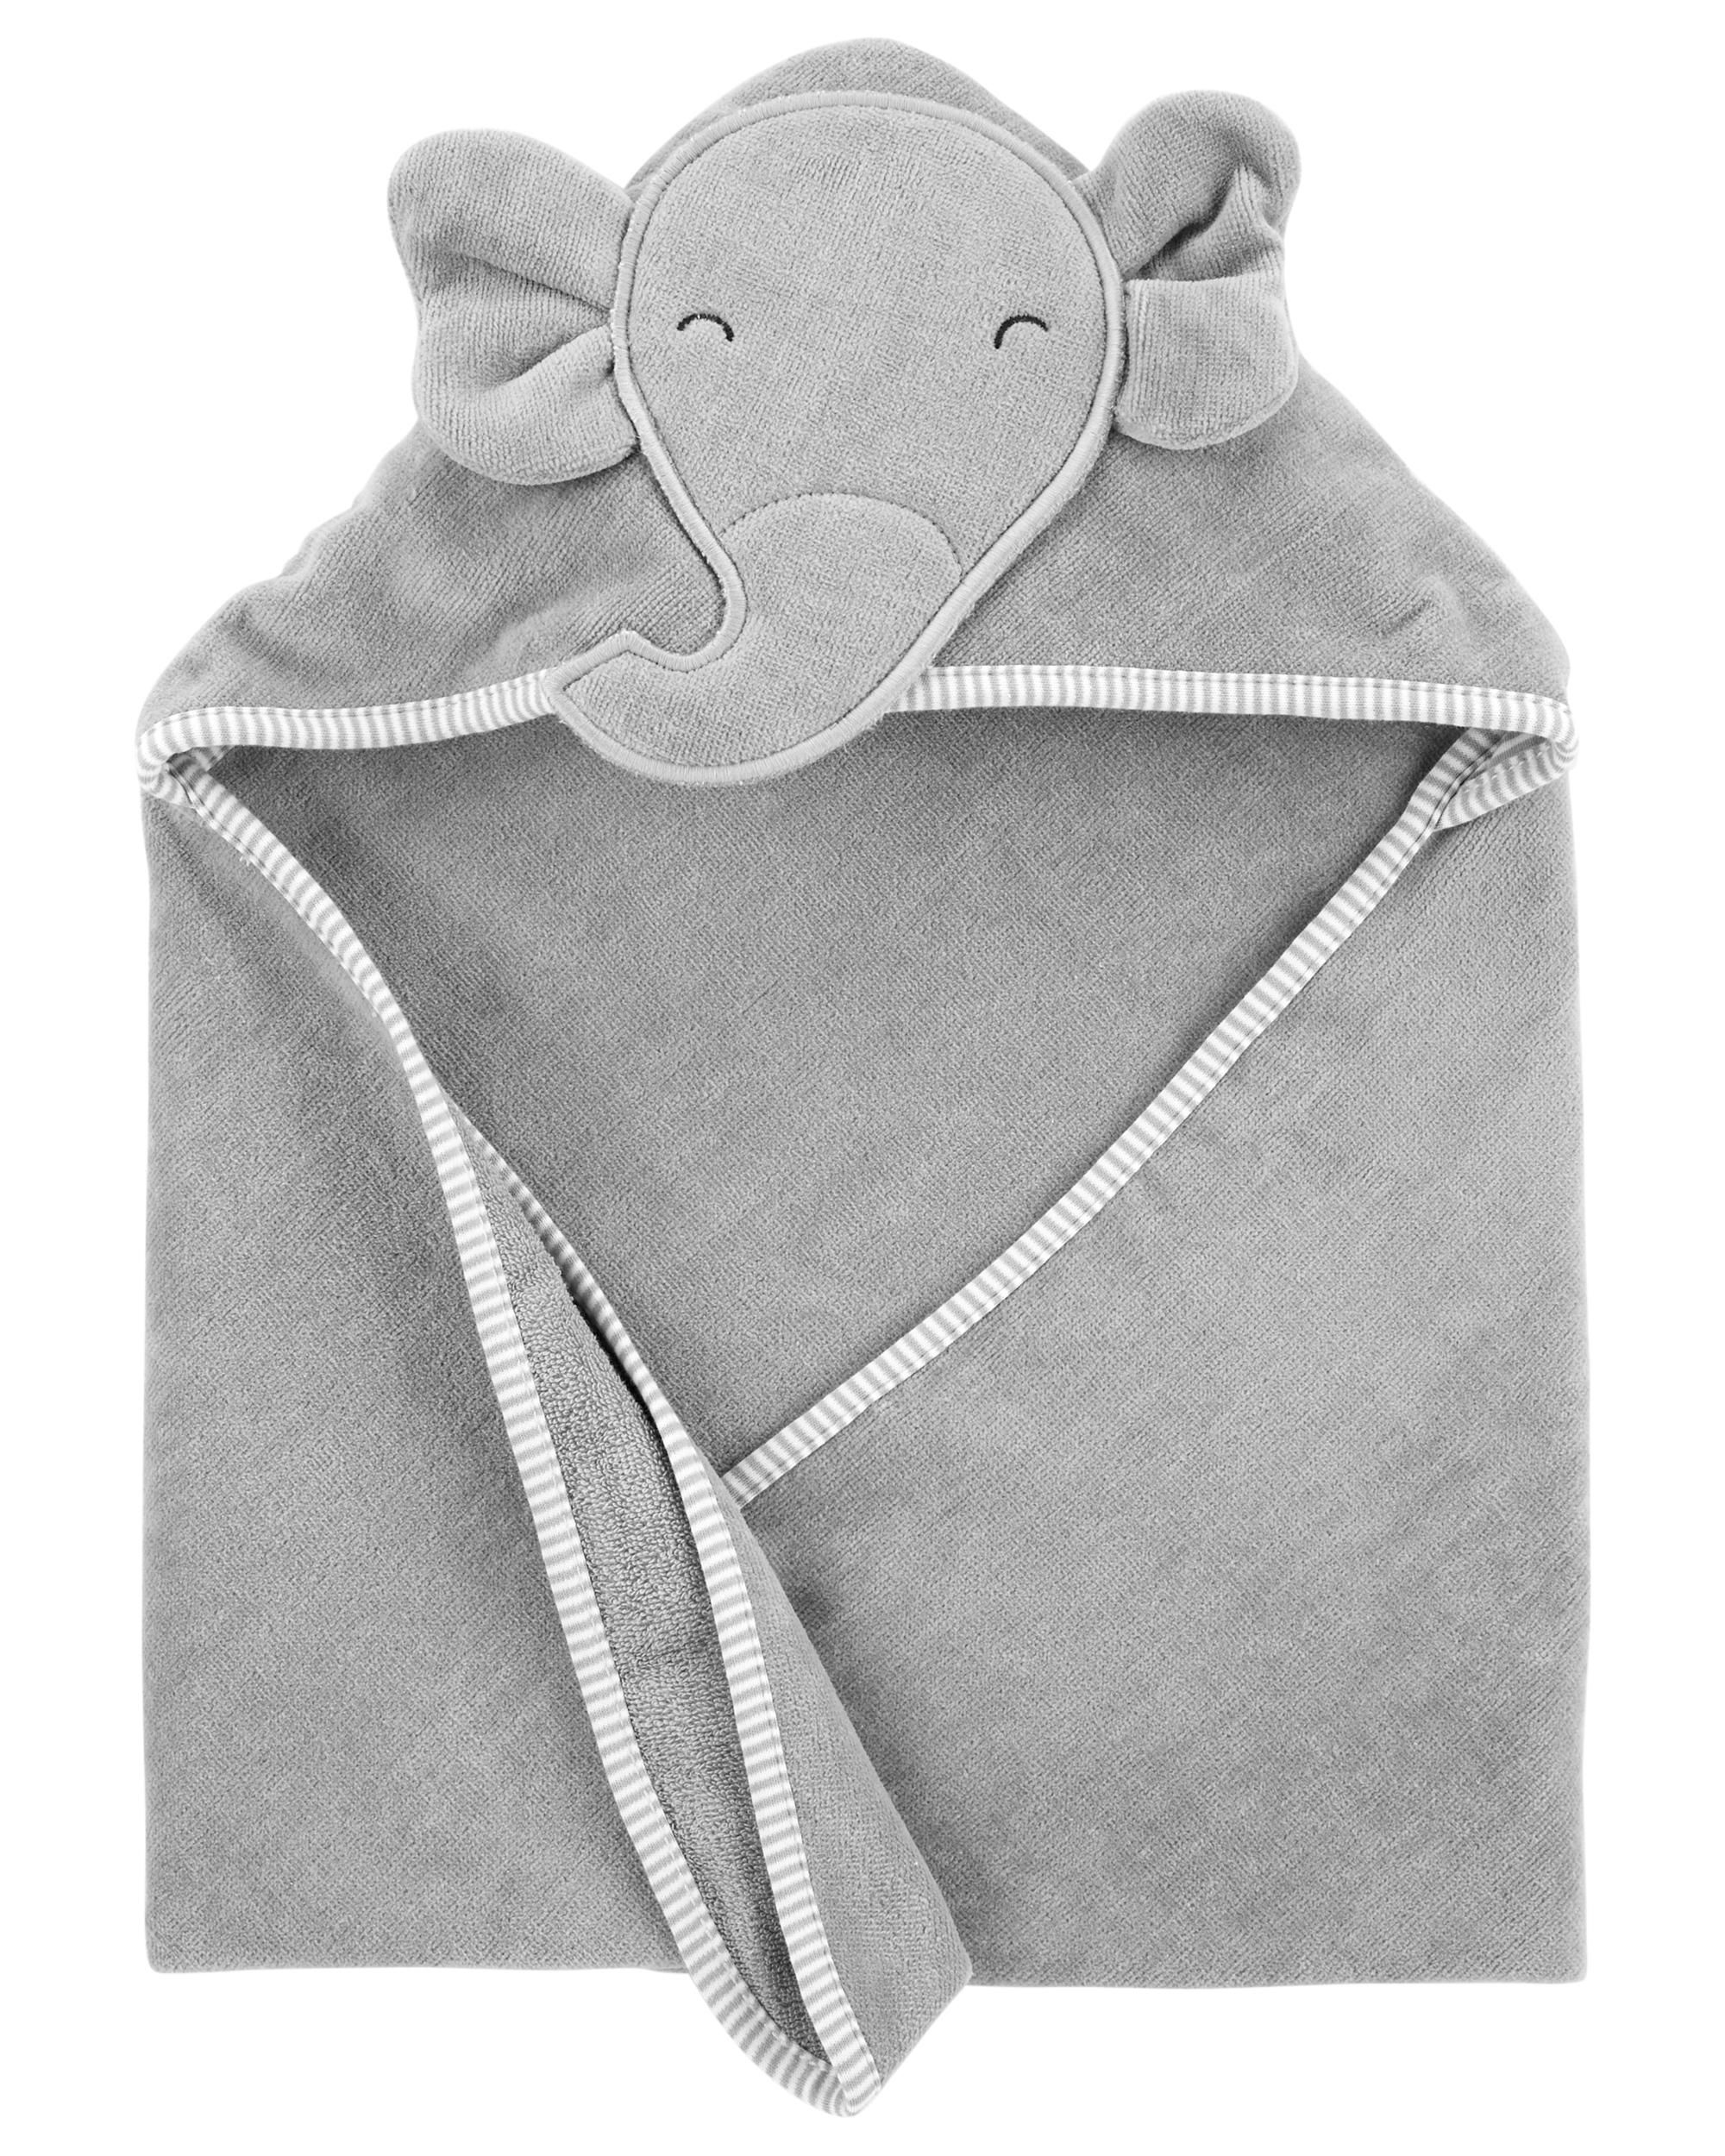 Elephant Hooded Towel Carters Baby Boys Baby Boy Outfits